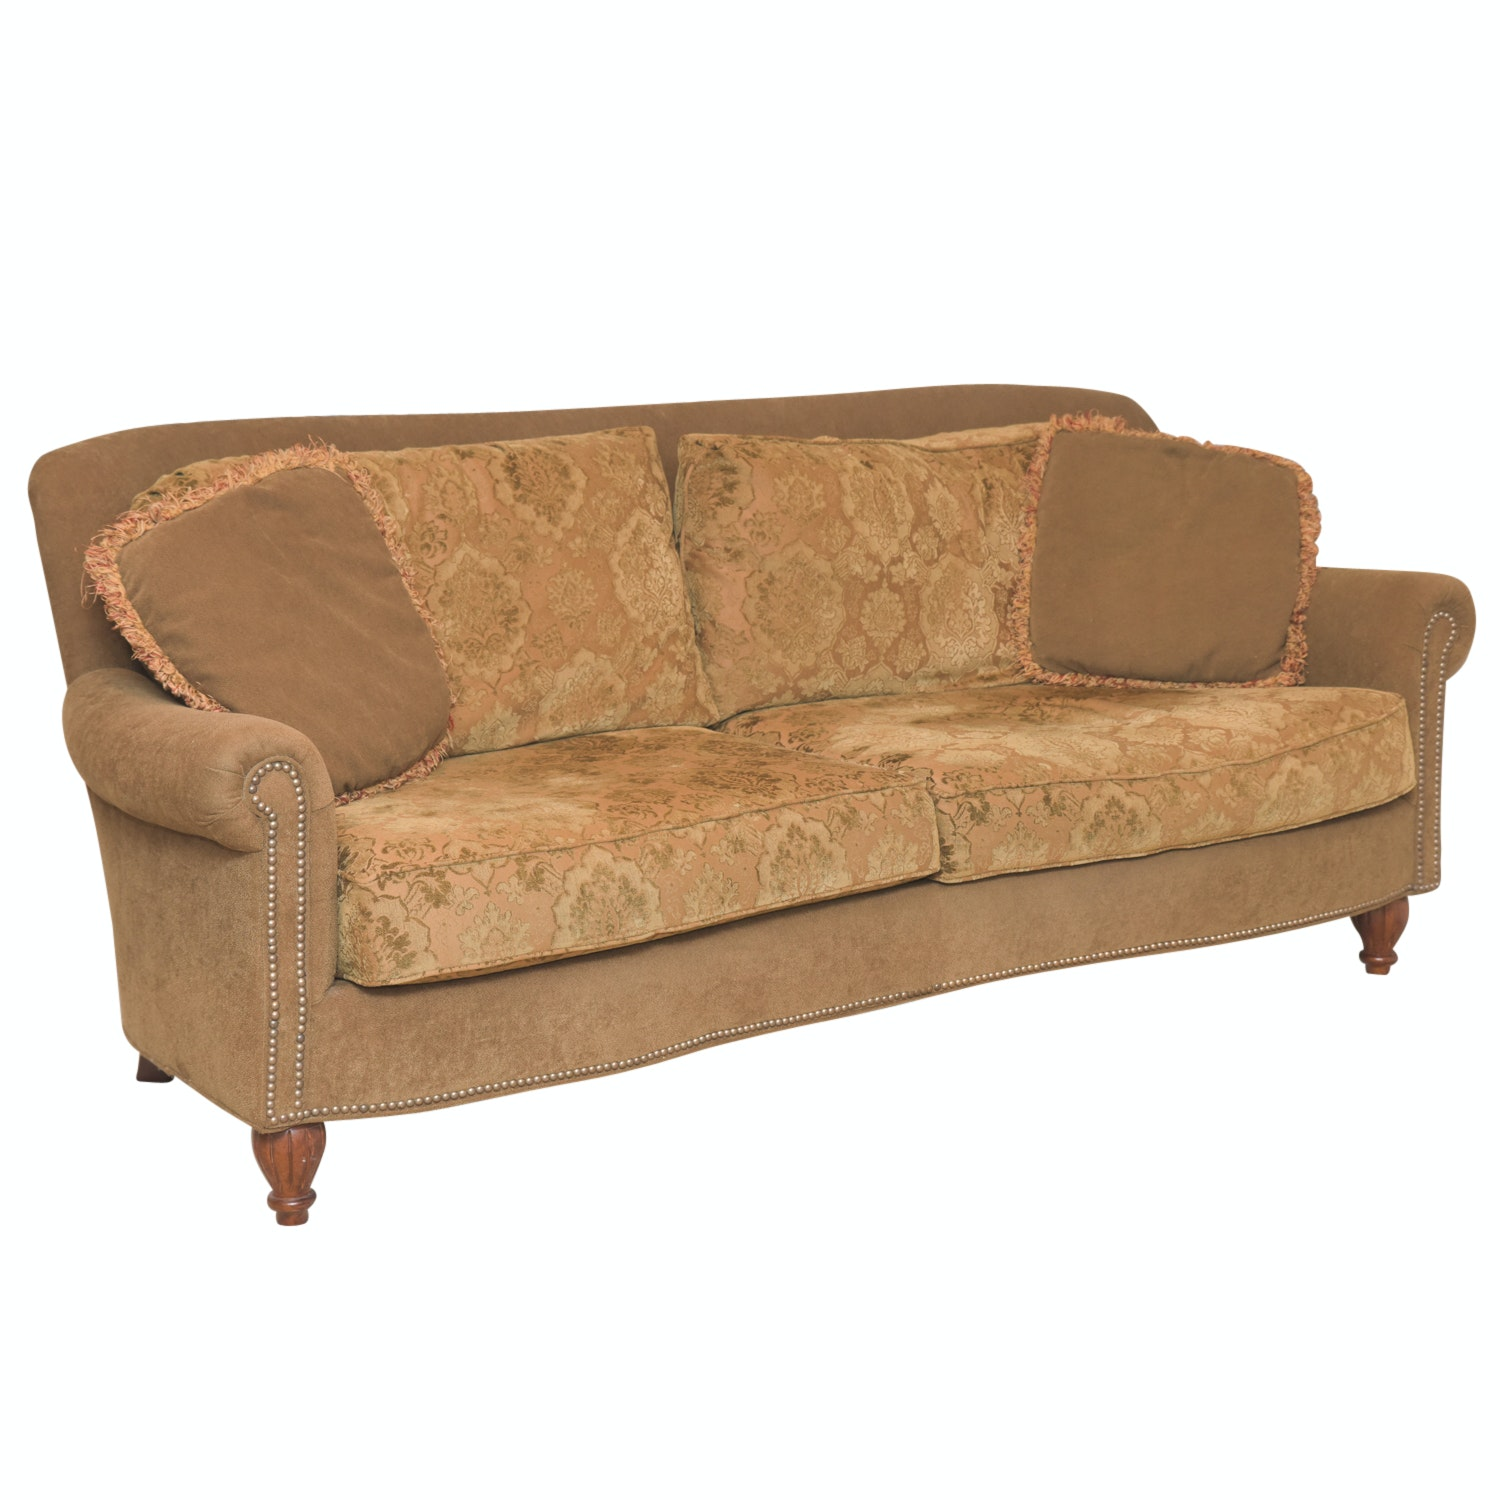 Fairfield Sofa With Floral Patterned Cushions ...